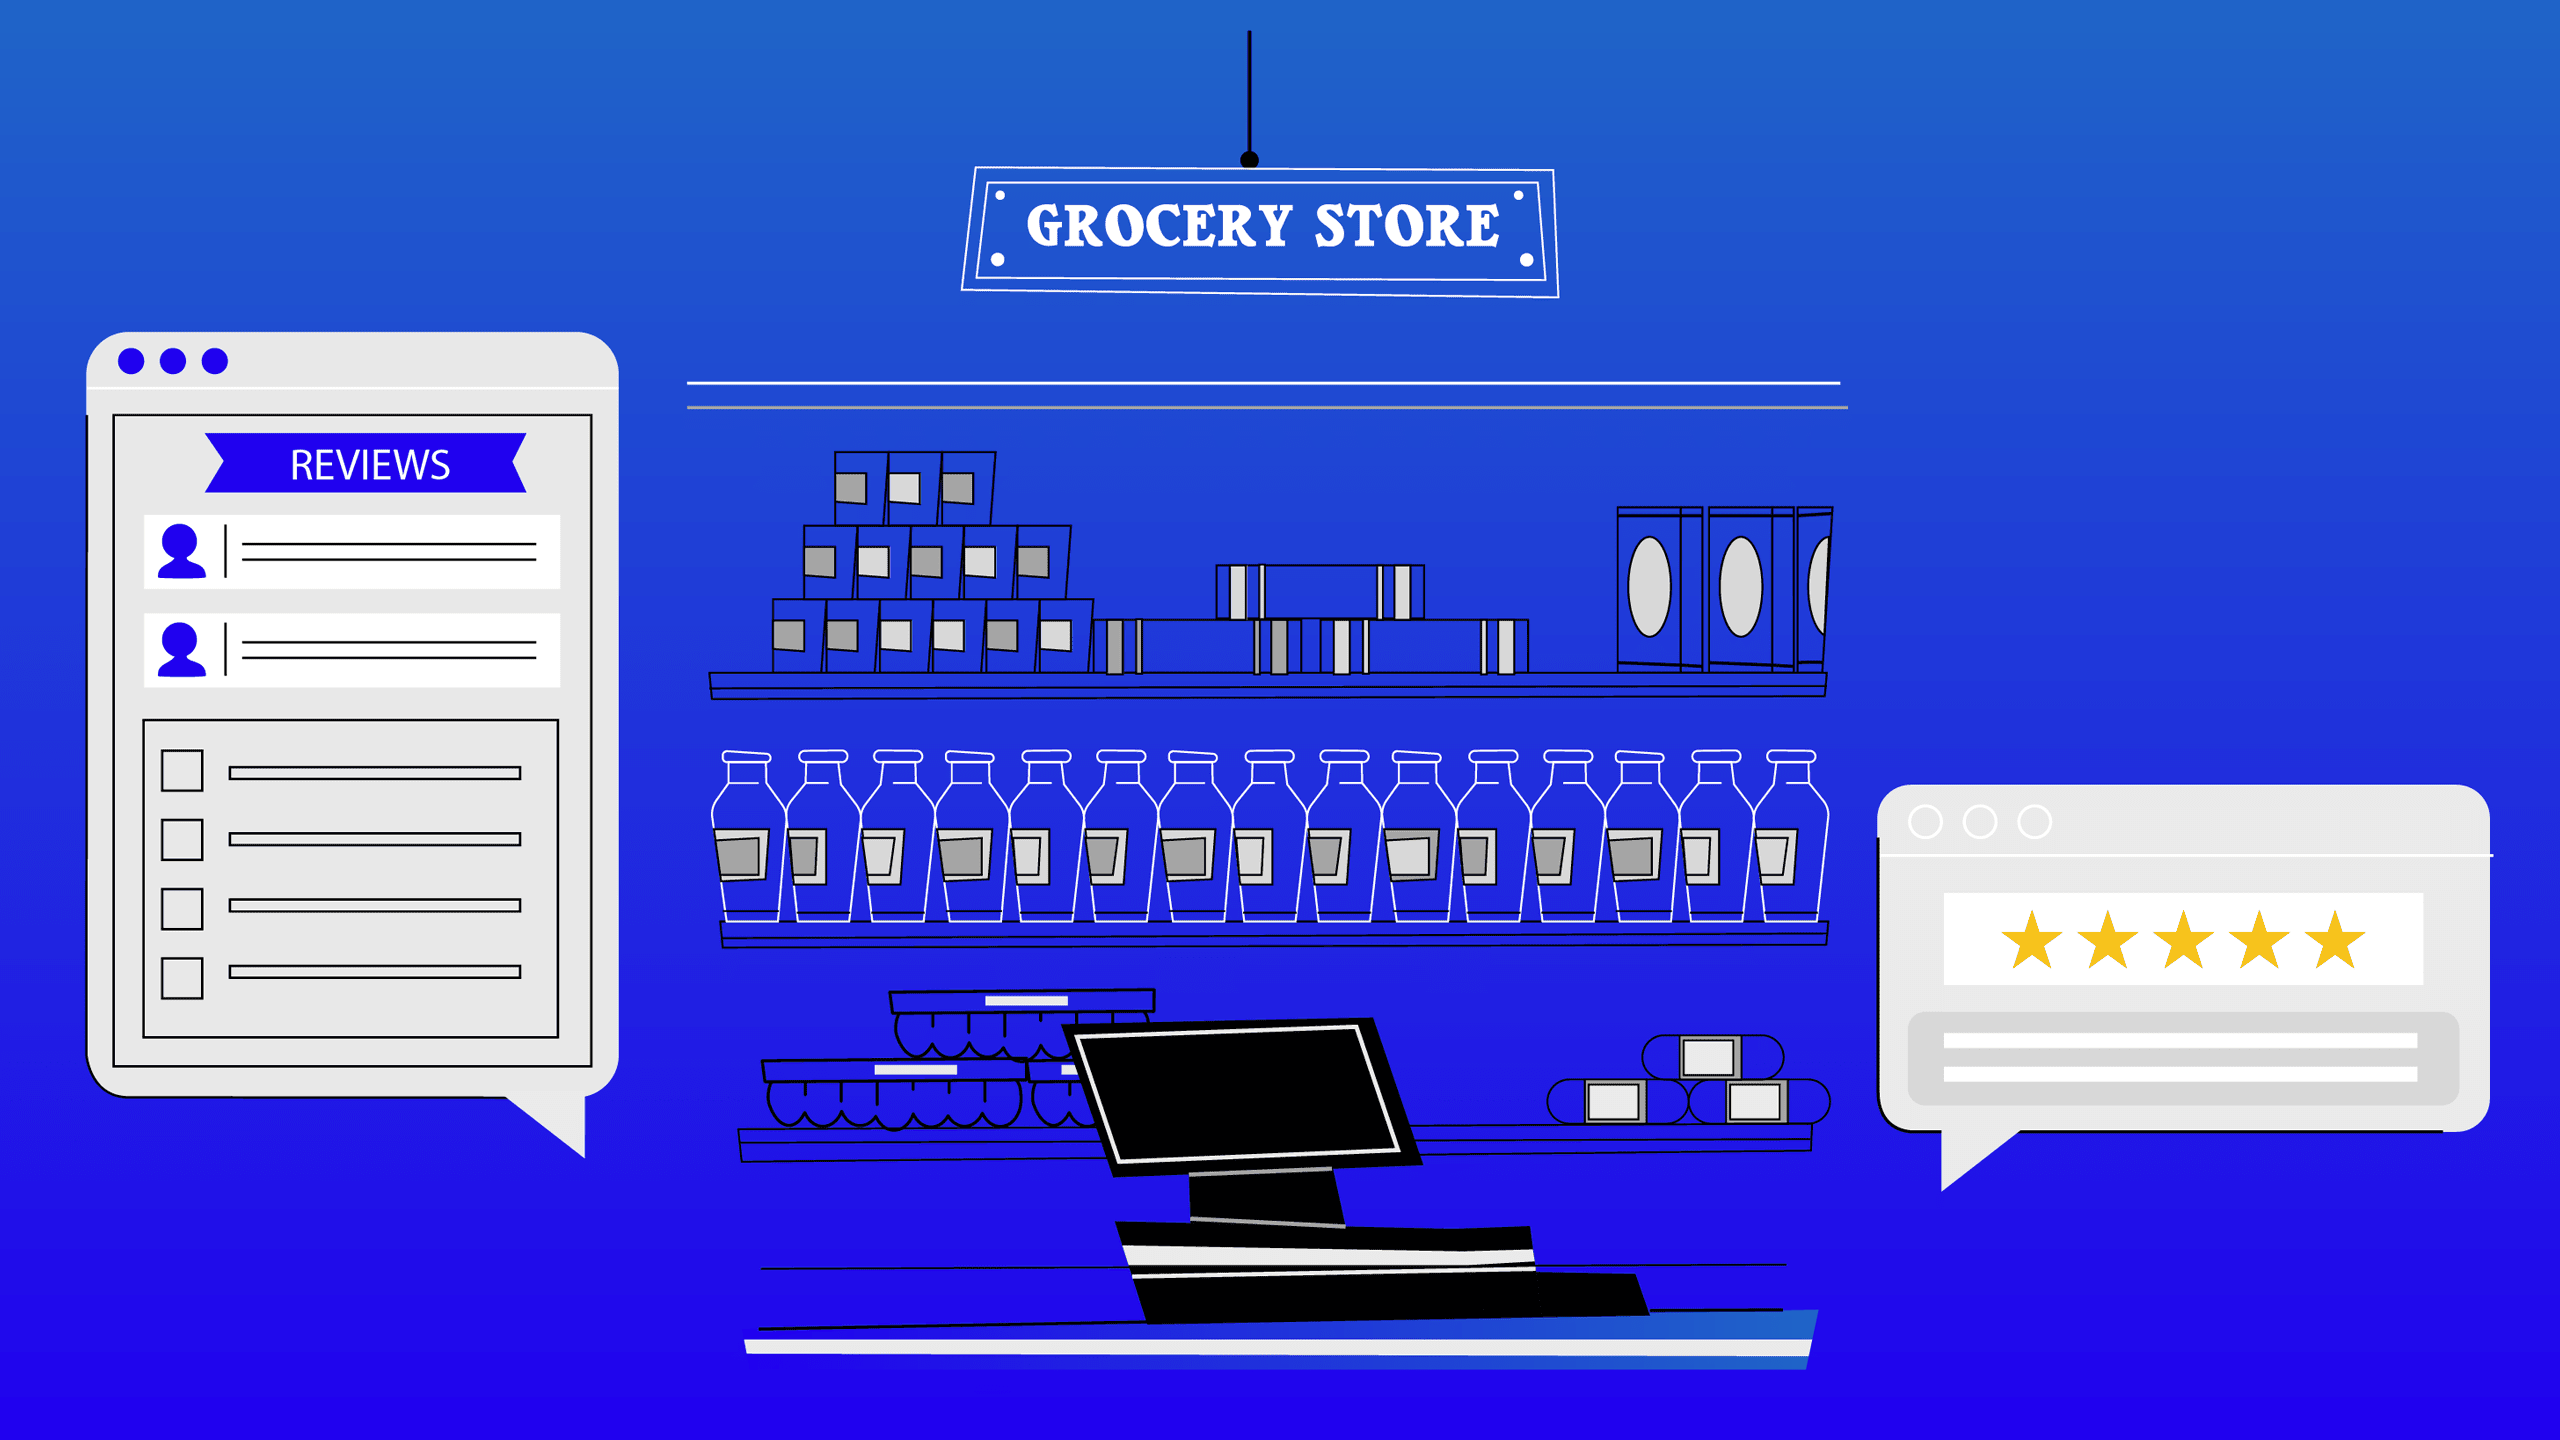 Retail Strategies Used by Grocery Stores Improved Customer Insights